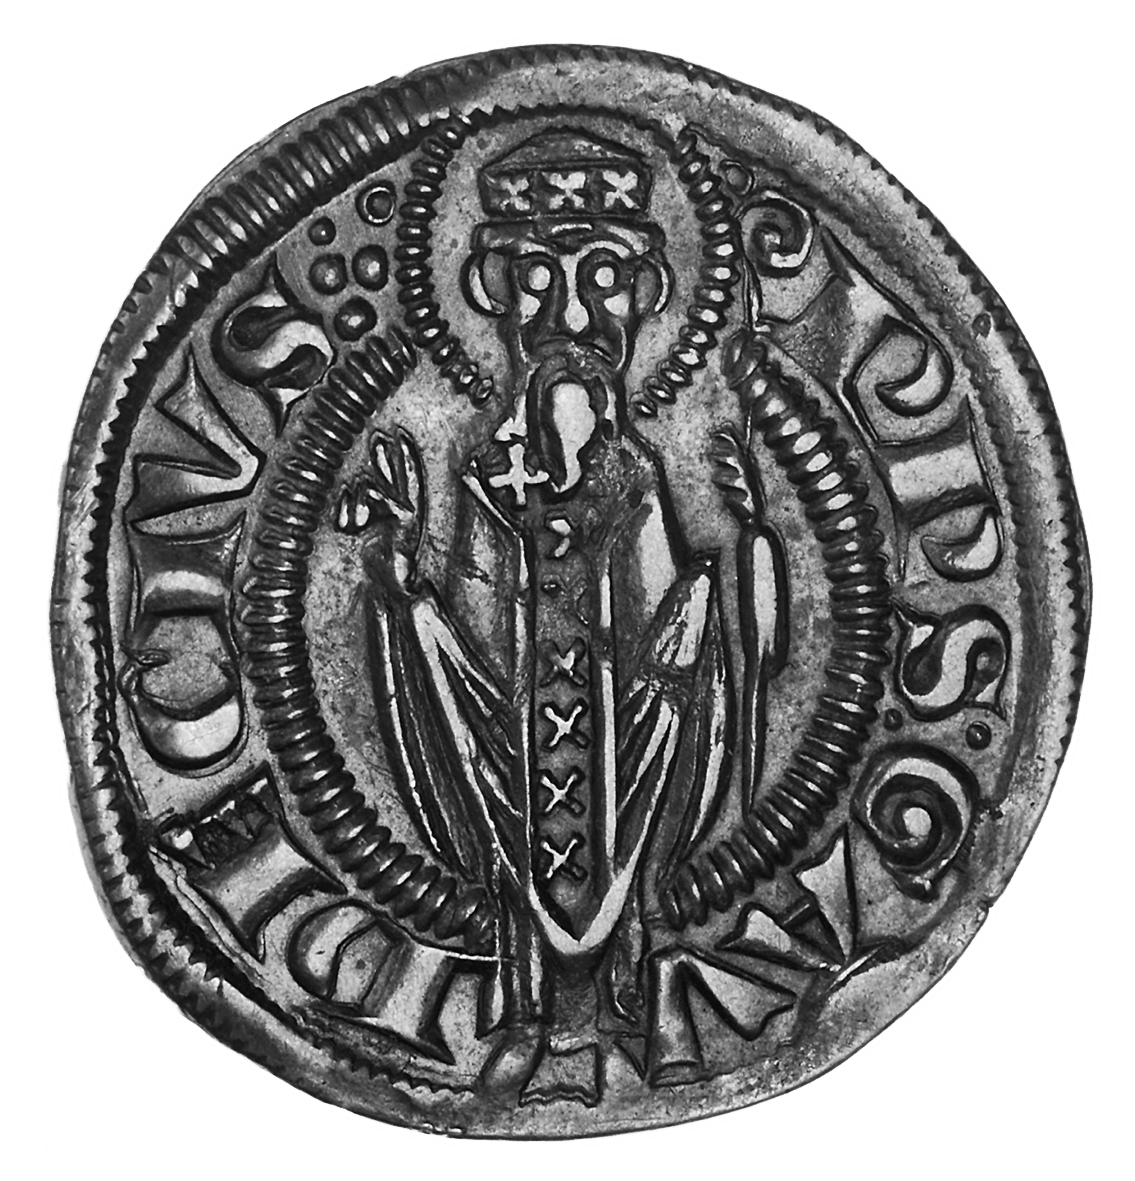 Holy Roman Empire, City of Rimini, Grosso (obverse)